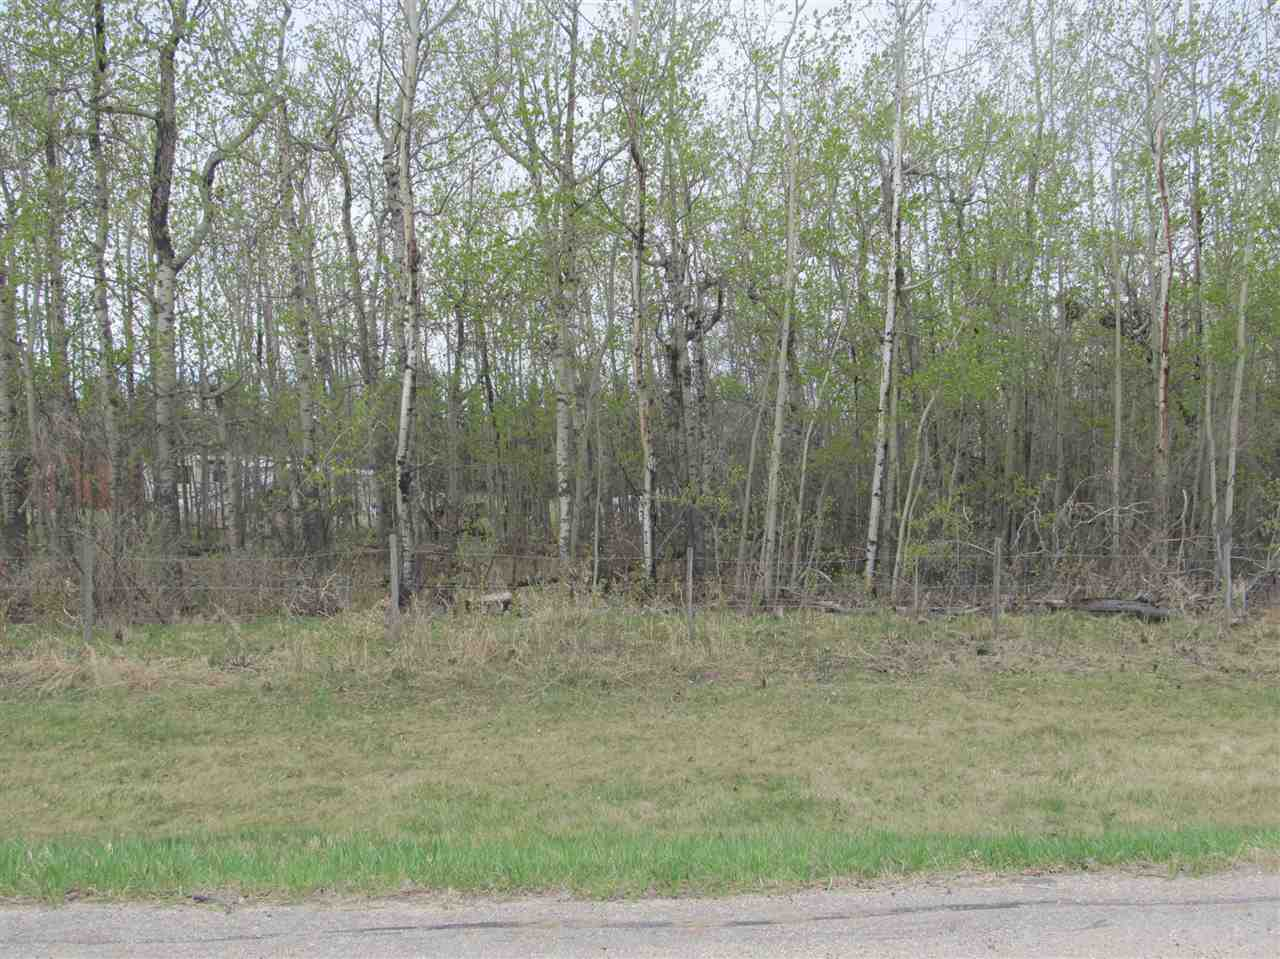 Photo 5: 19 22515 Twp Rd 575A: Rural Sturgeon County Rural Land/Vacant Lot for sale : MLS(r) # E4061245